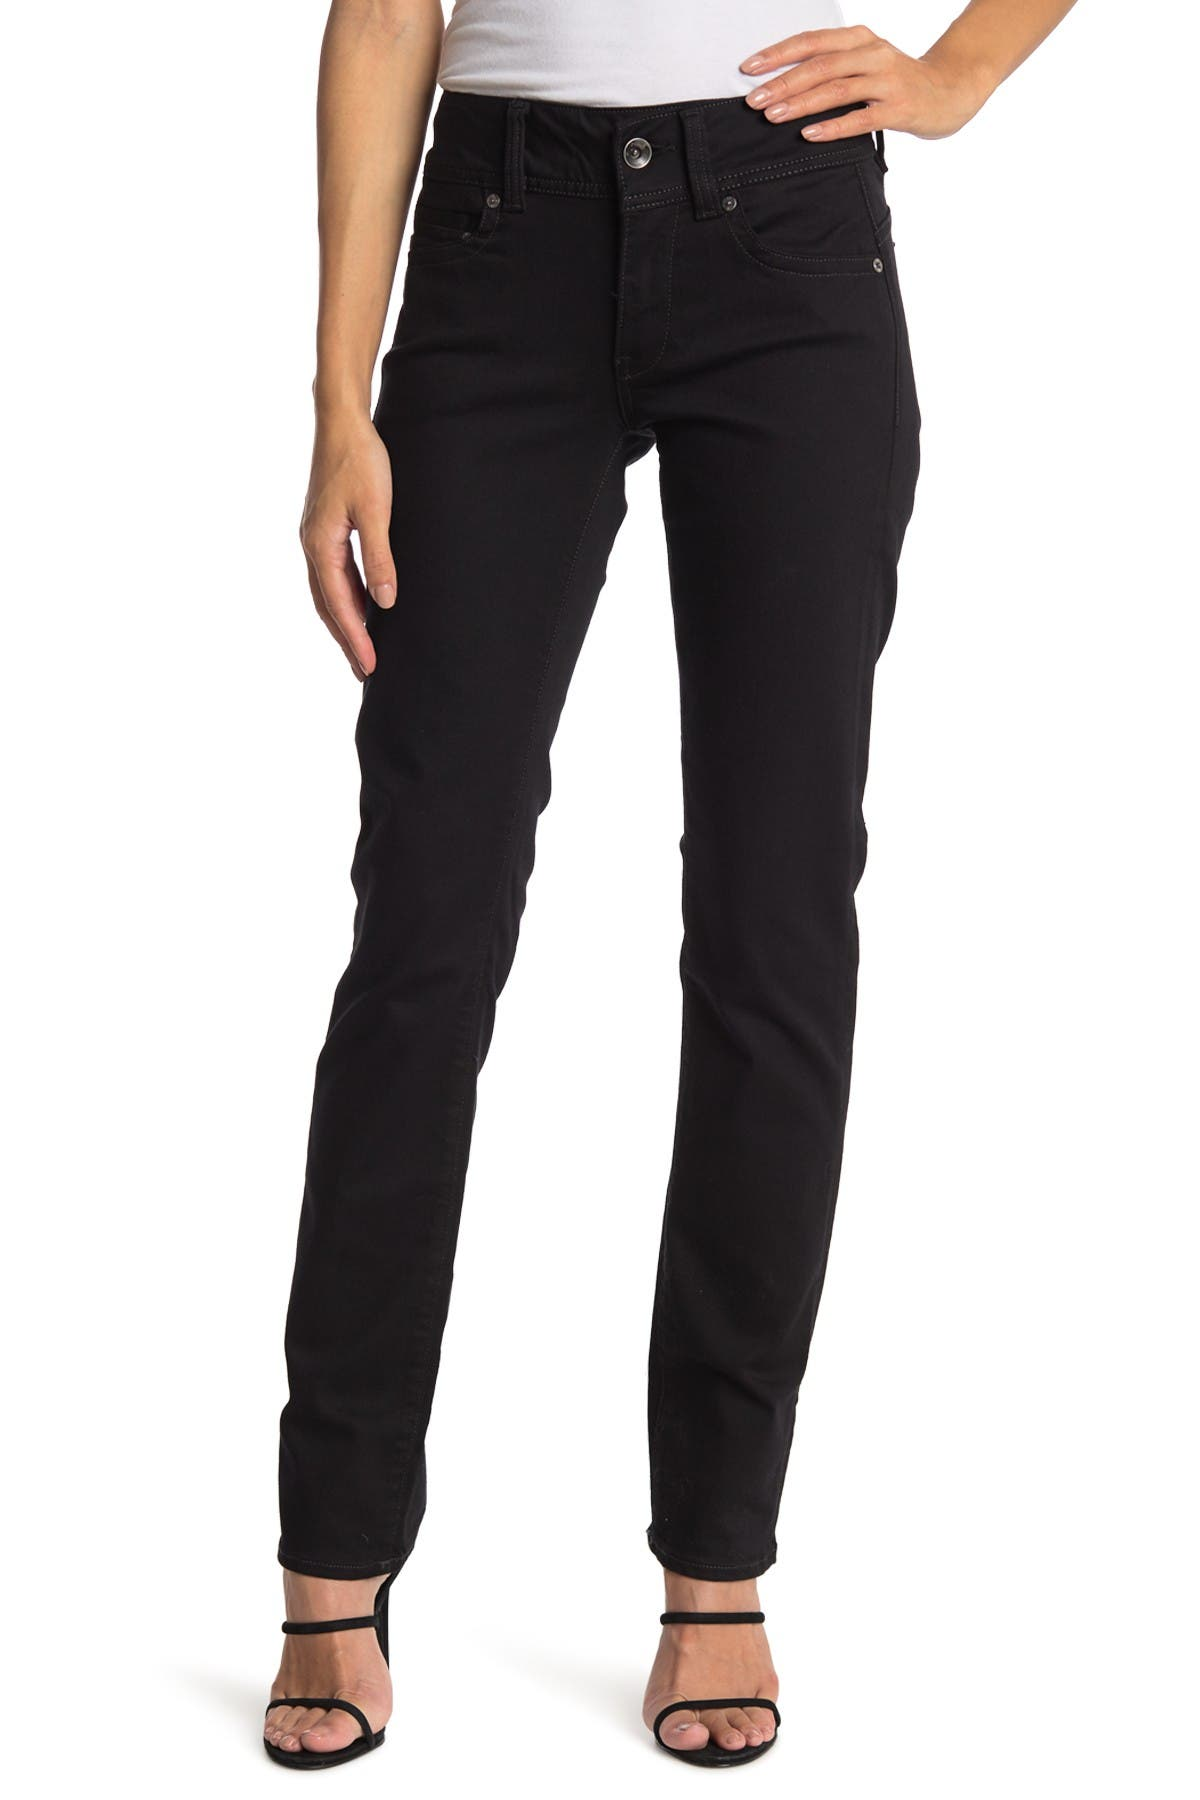 Image of G-STAR RAW Midge Saddle Mid Straight Leg Jeans